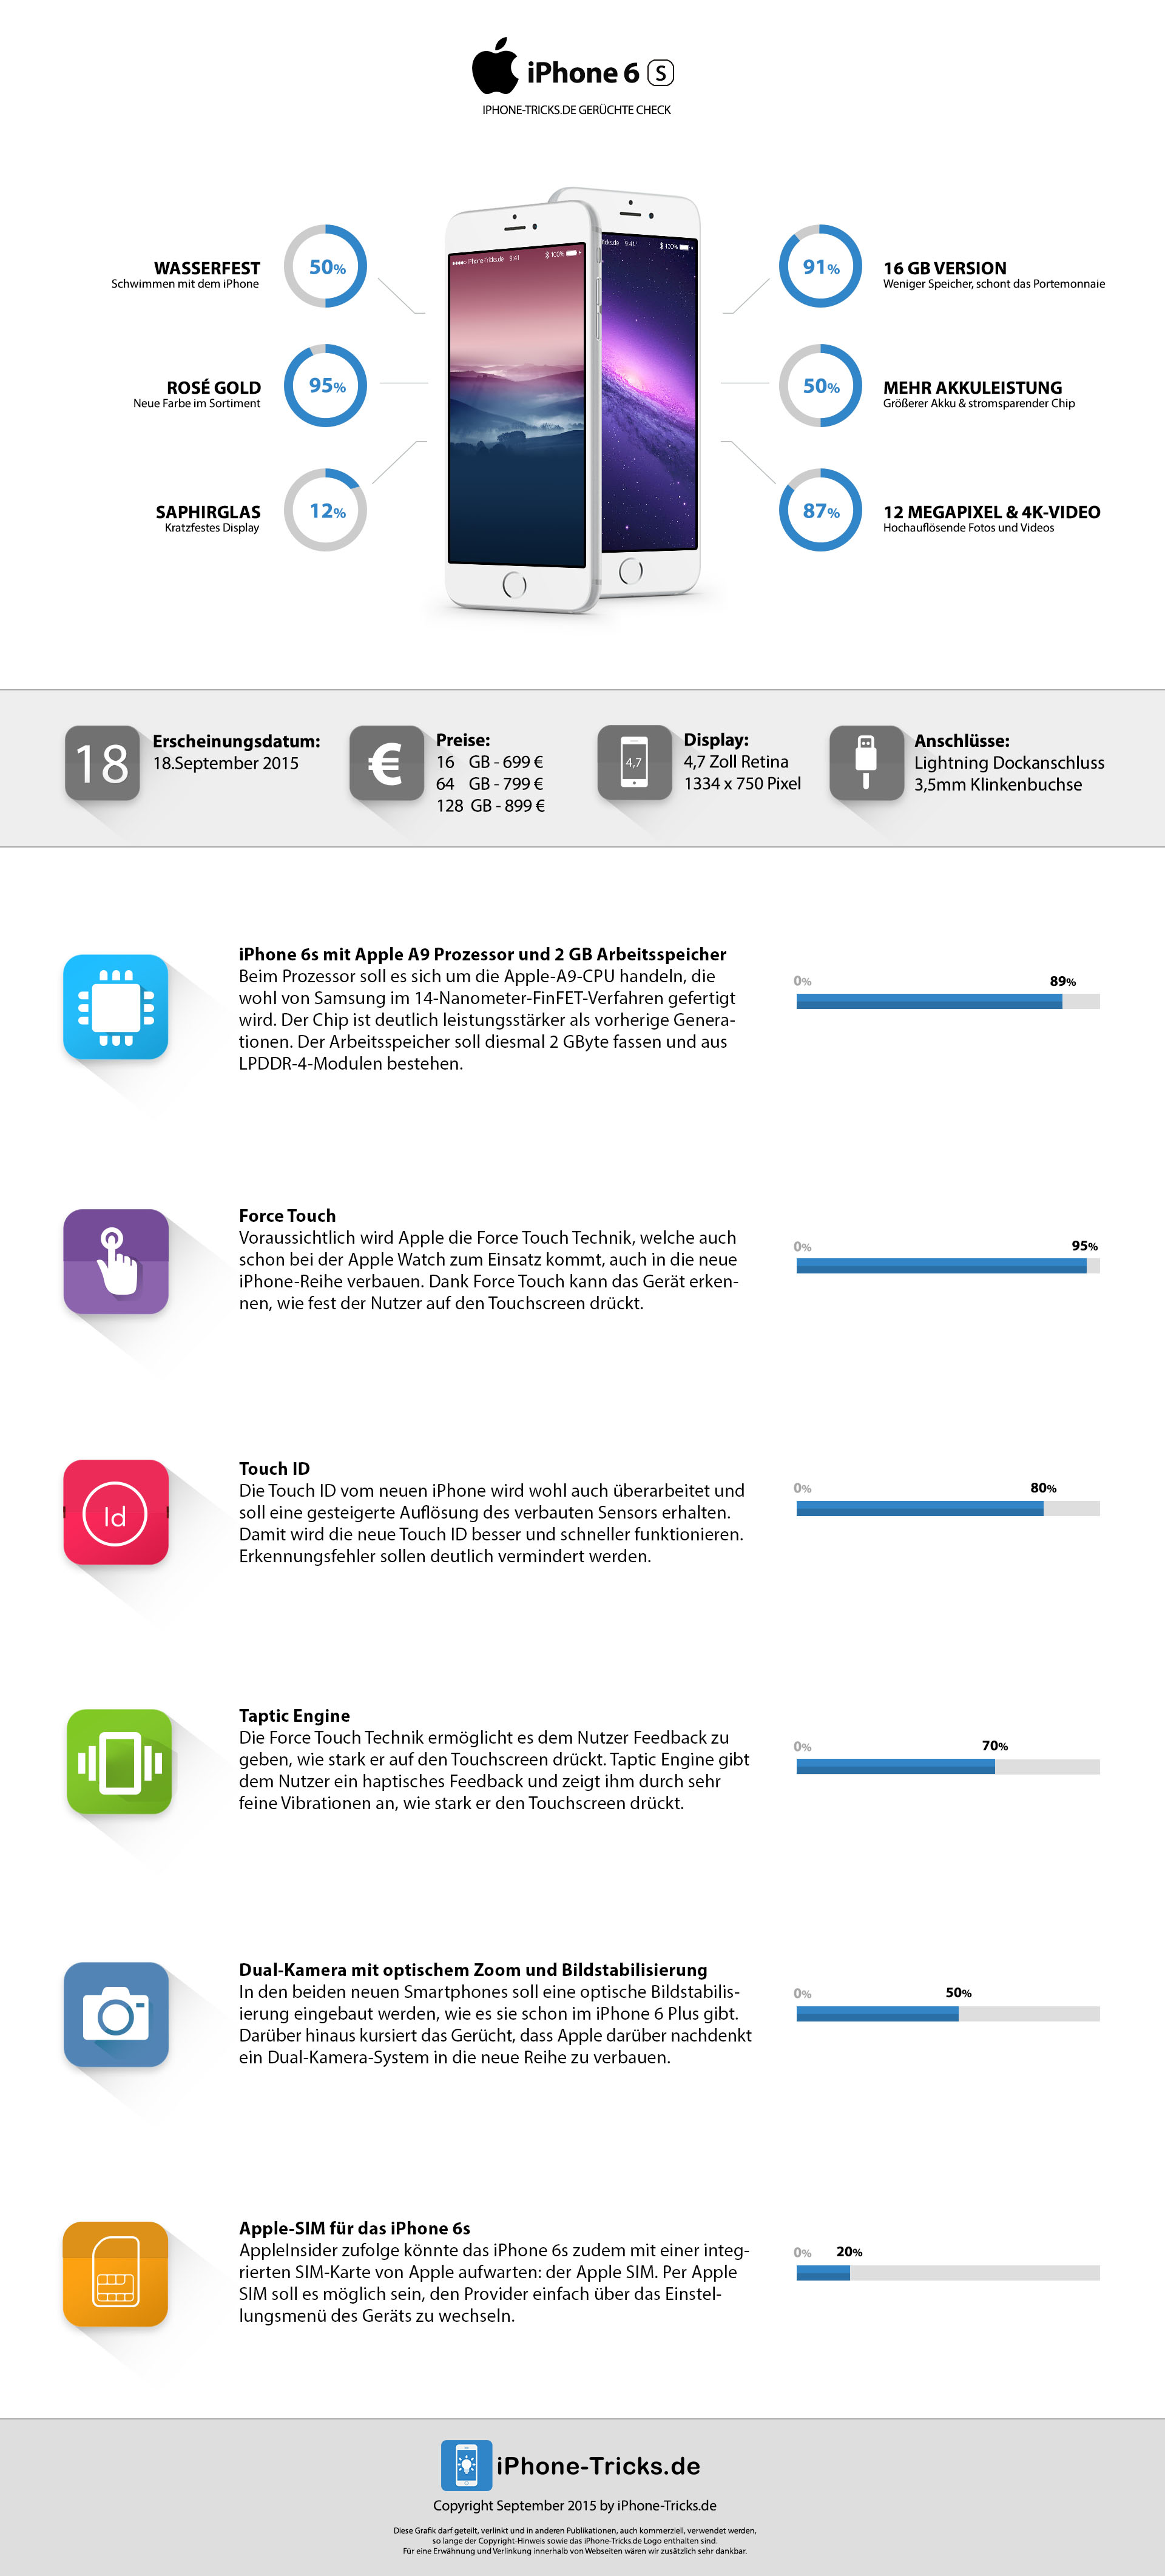 iPhone_6s_infographic